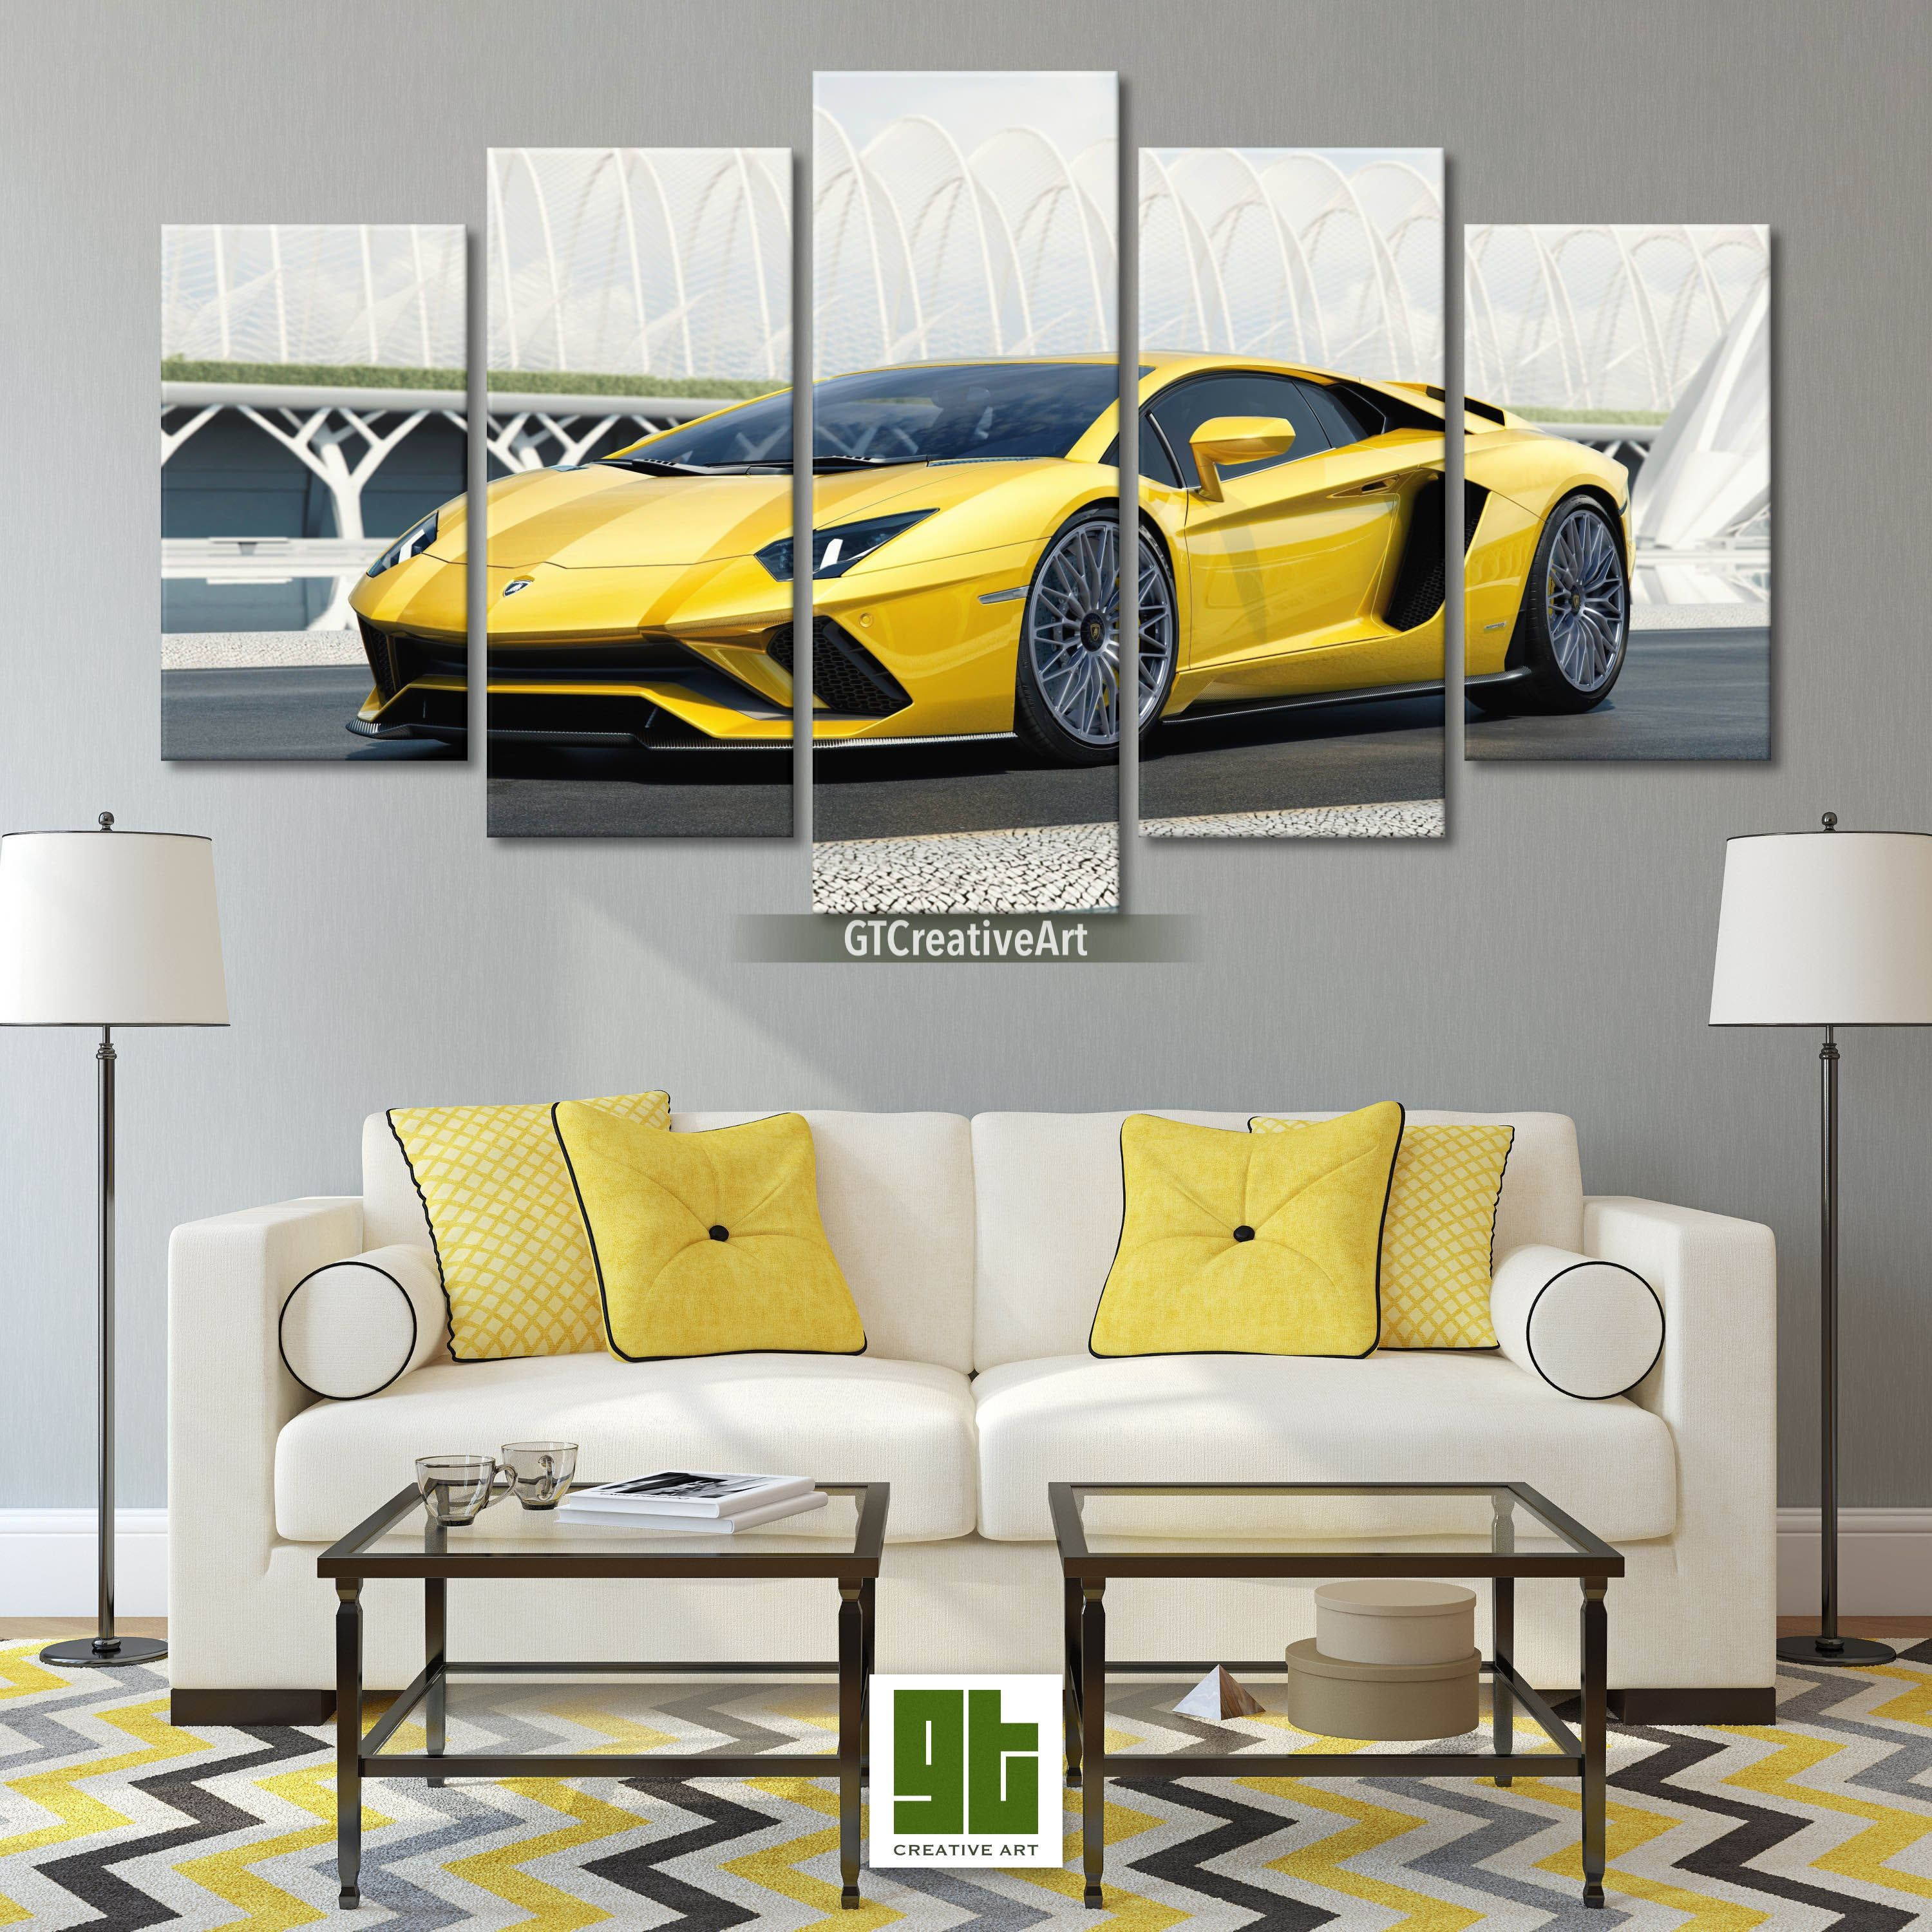 Supercar Wall Art Golden Lamborghini Aventador S Print On Canvas Sport Car Framed Canvas Set Racing Gifts In 2020 Canvas Frame Custom Canvas Prints Canvas Prints